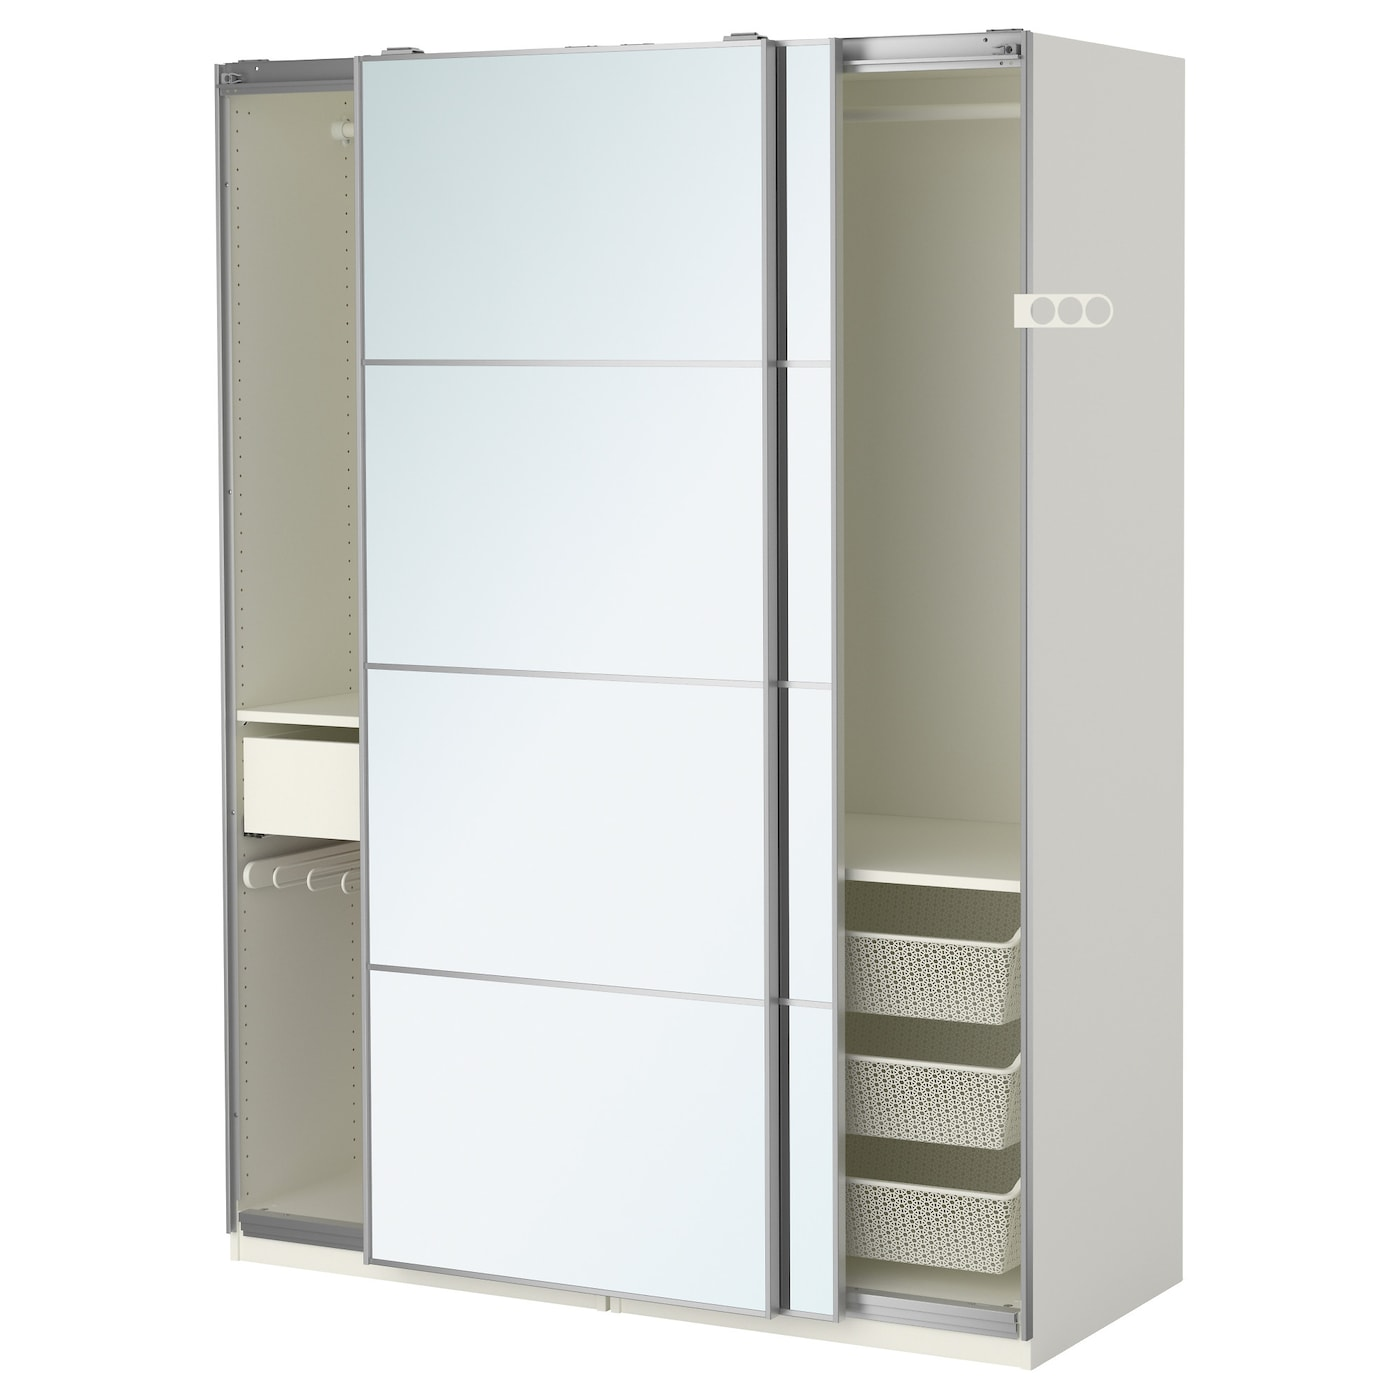 Pax wardrobe white auli mirror glass 150x66x201 cm ikea - Ikea armoire with mirror ...